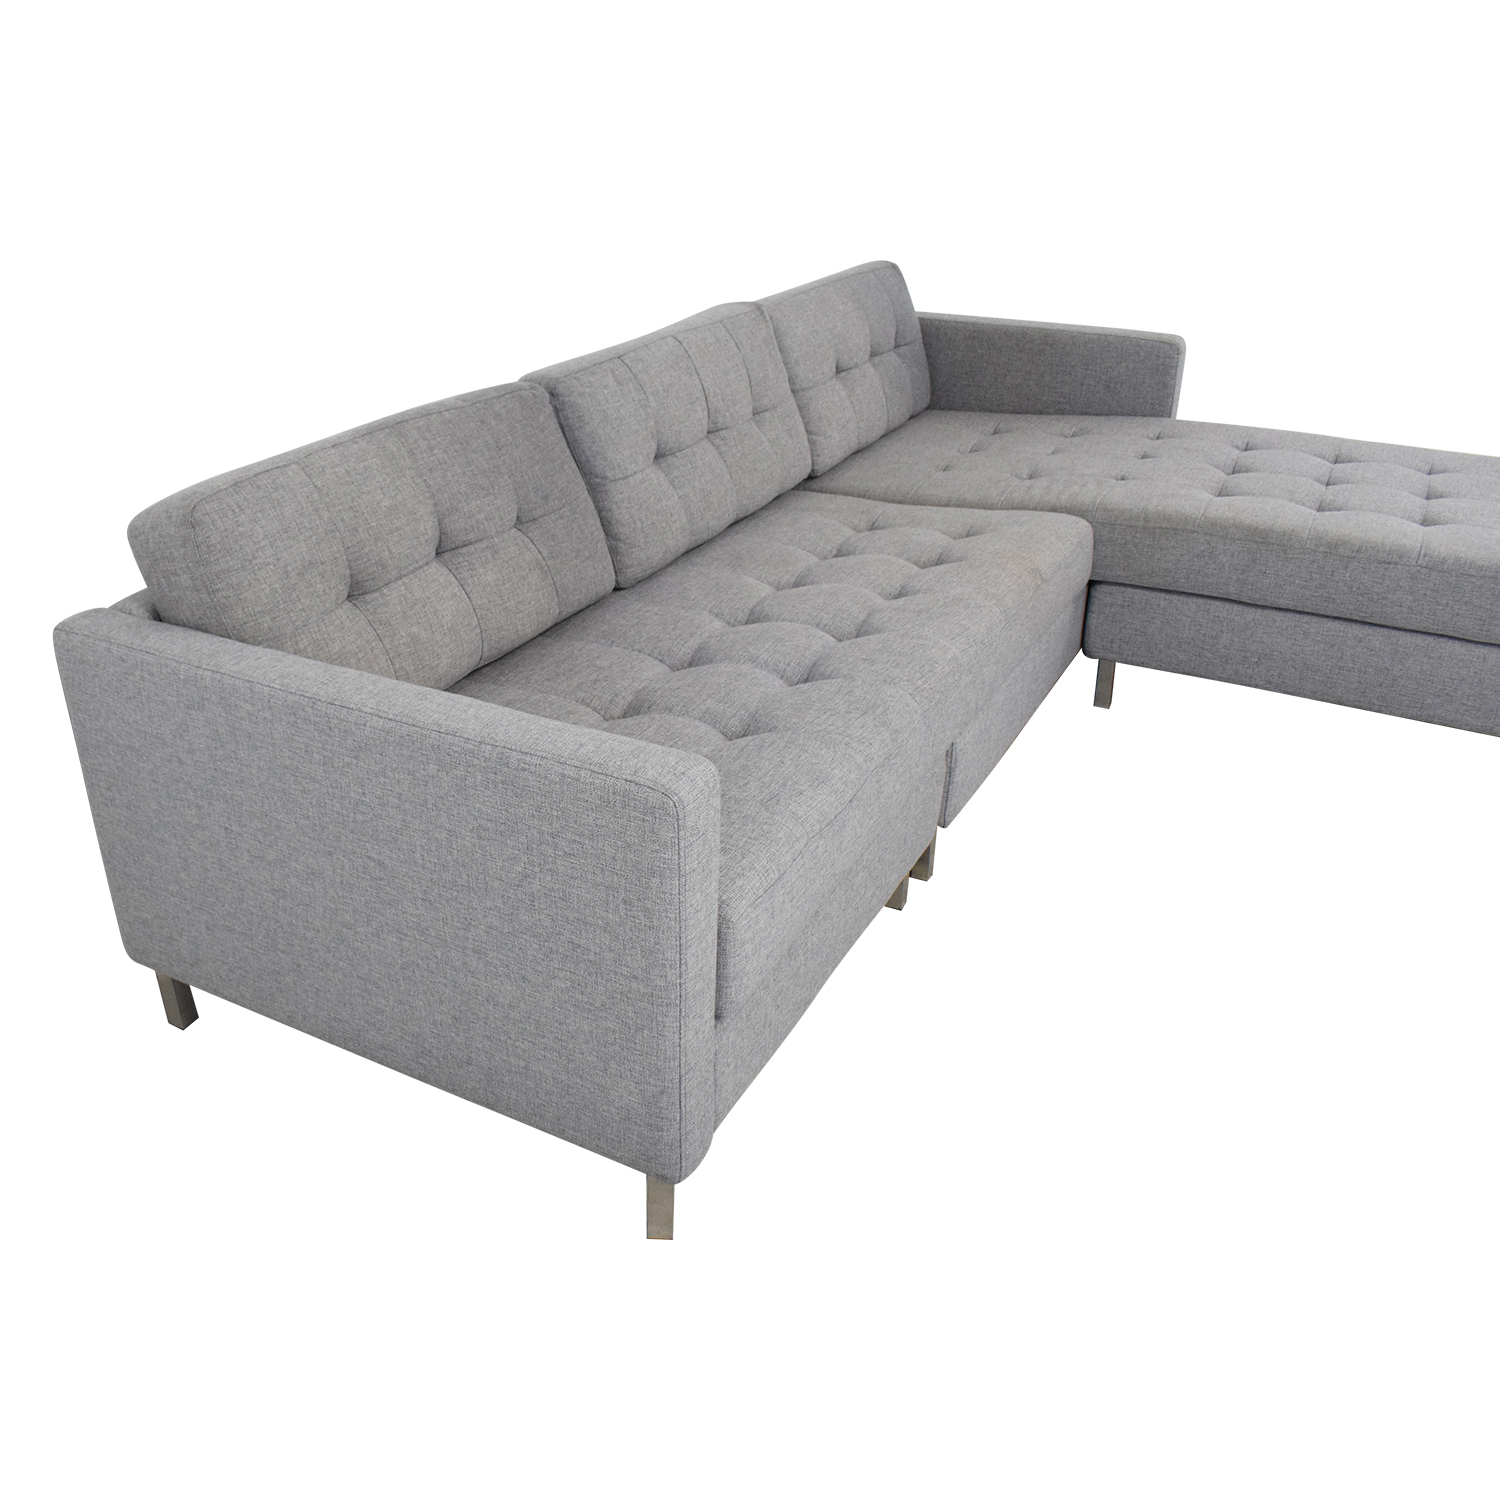 CB2 Ditto II Sectional Sofa / Sofas